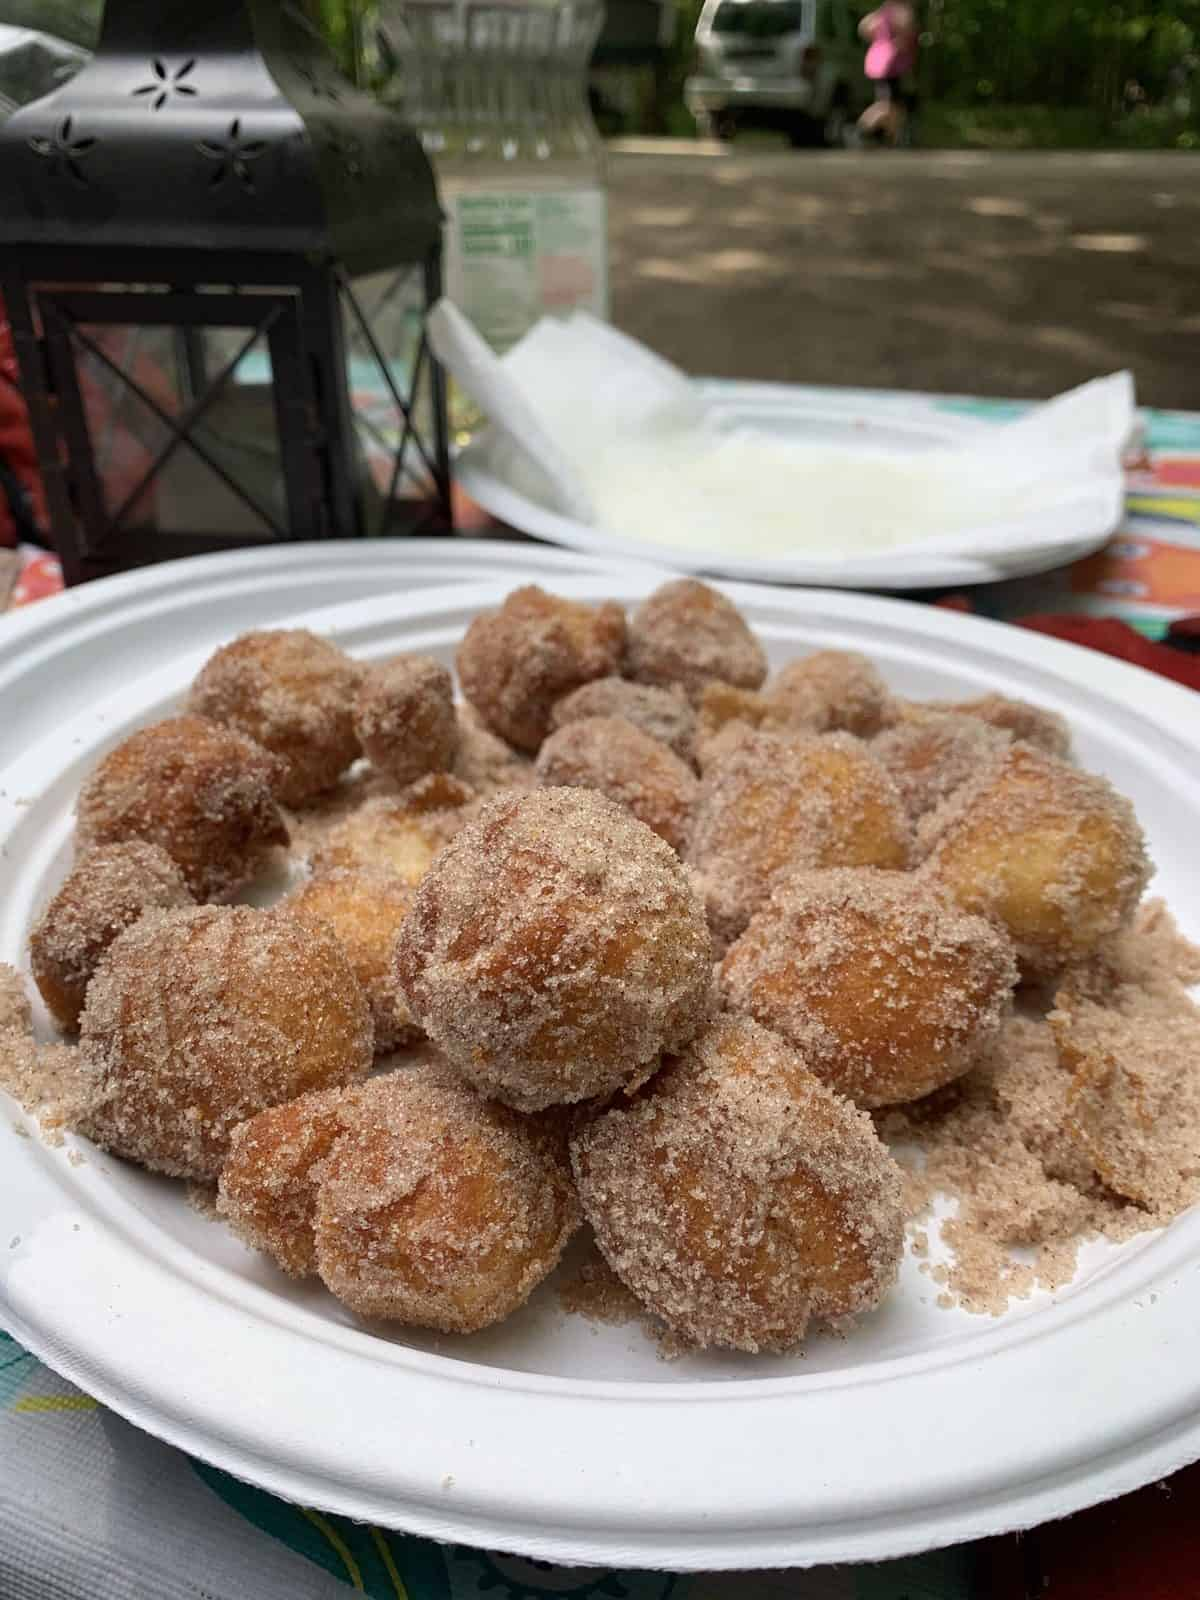 A paper plate loaded with homemade camping doughnuts covered in sugar and cinnamon.